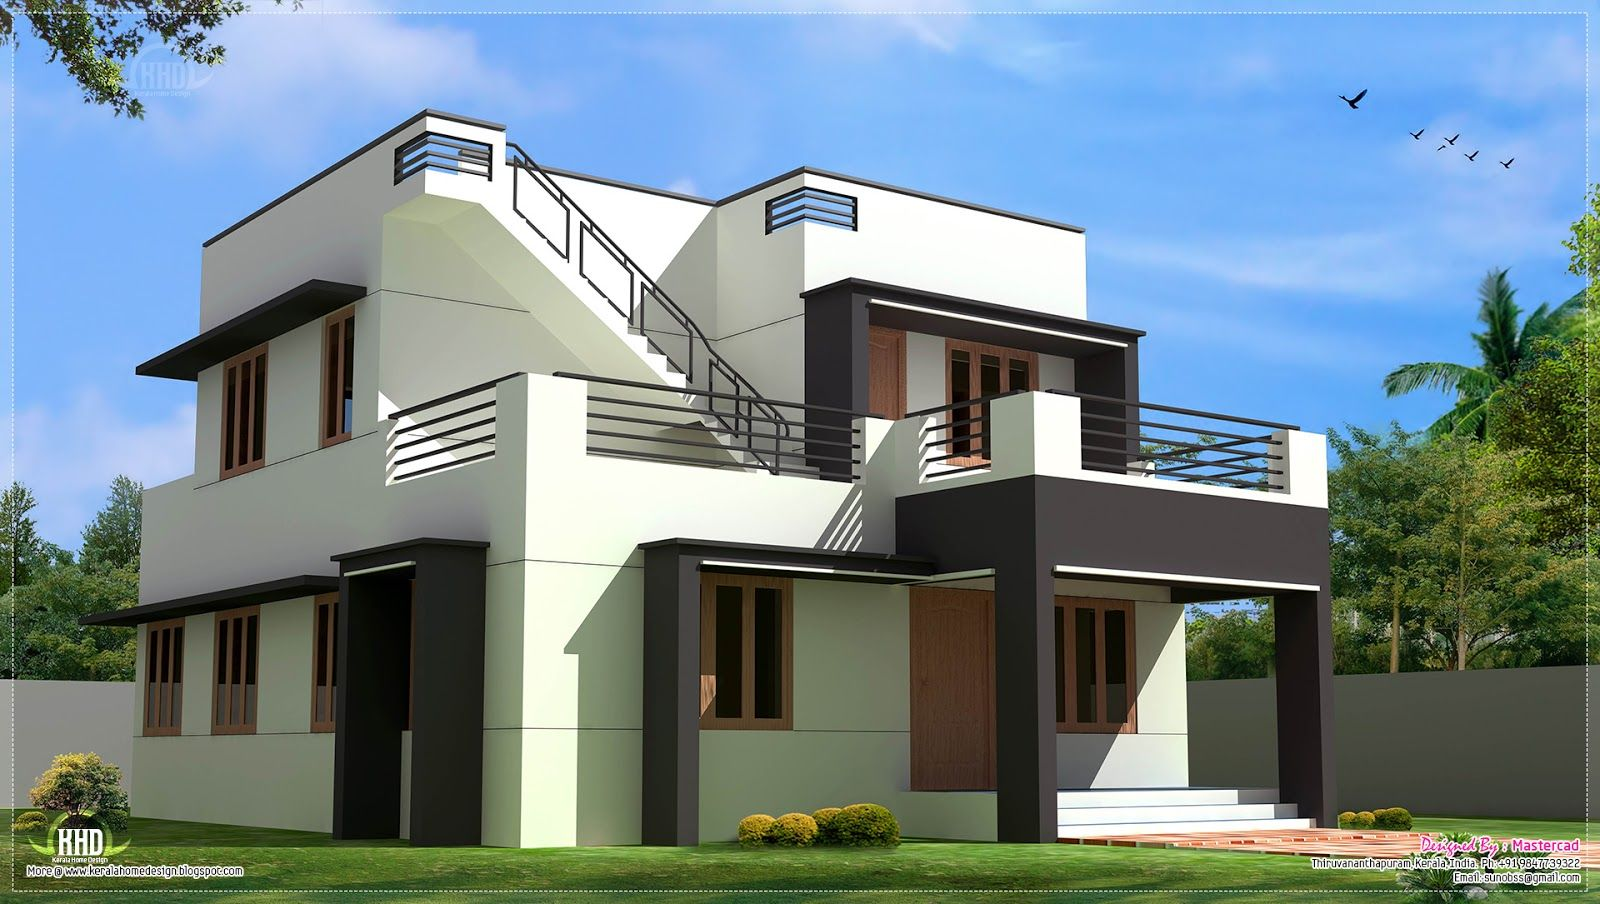 kerala home design and floor plans 2800 sq description from